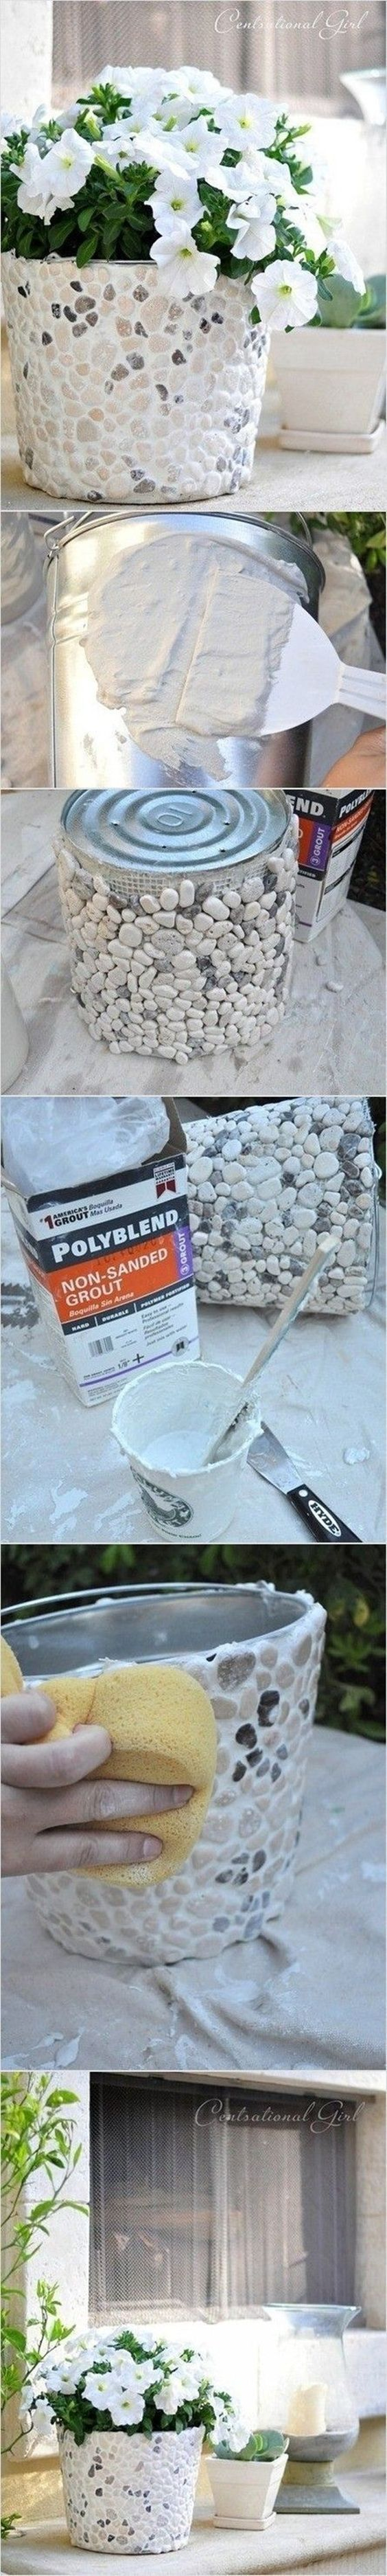 20 Cool Ways to Use STONE for DIY Projects in 2016